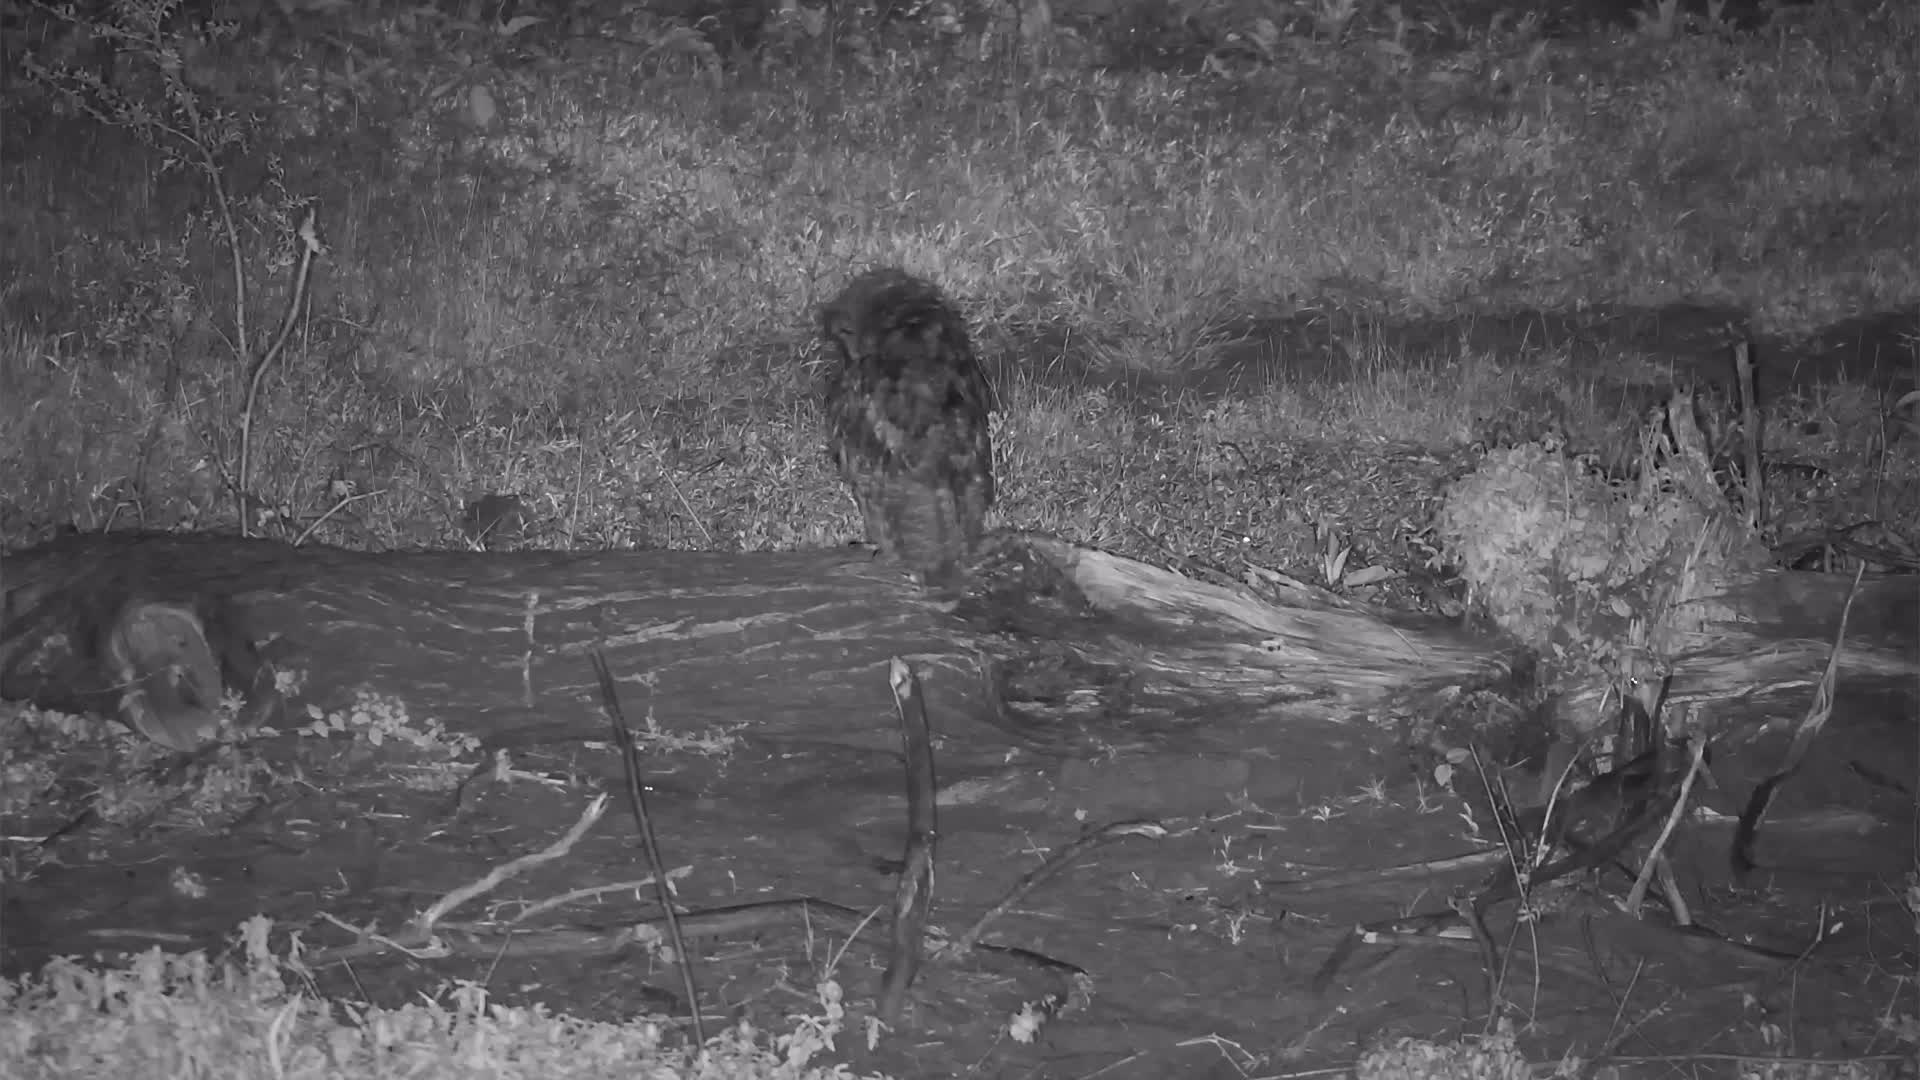 VIDEO: Spotted Eagle Owl Preening